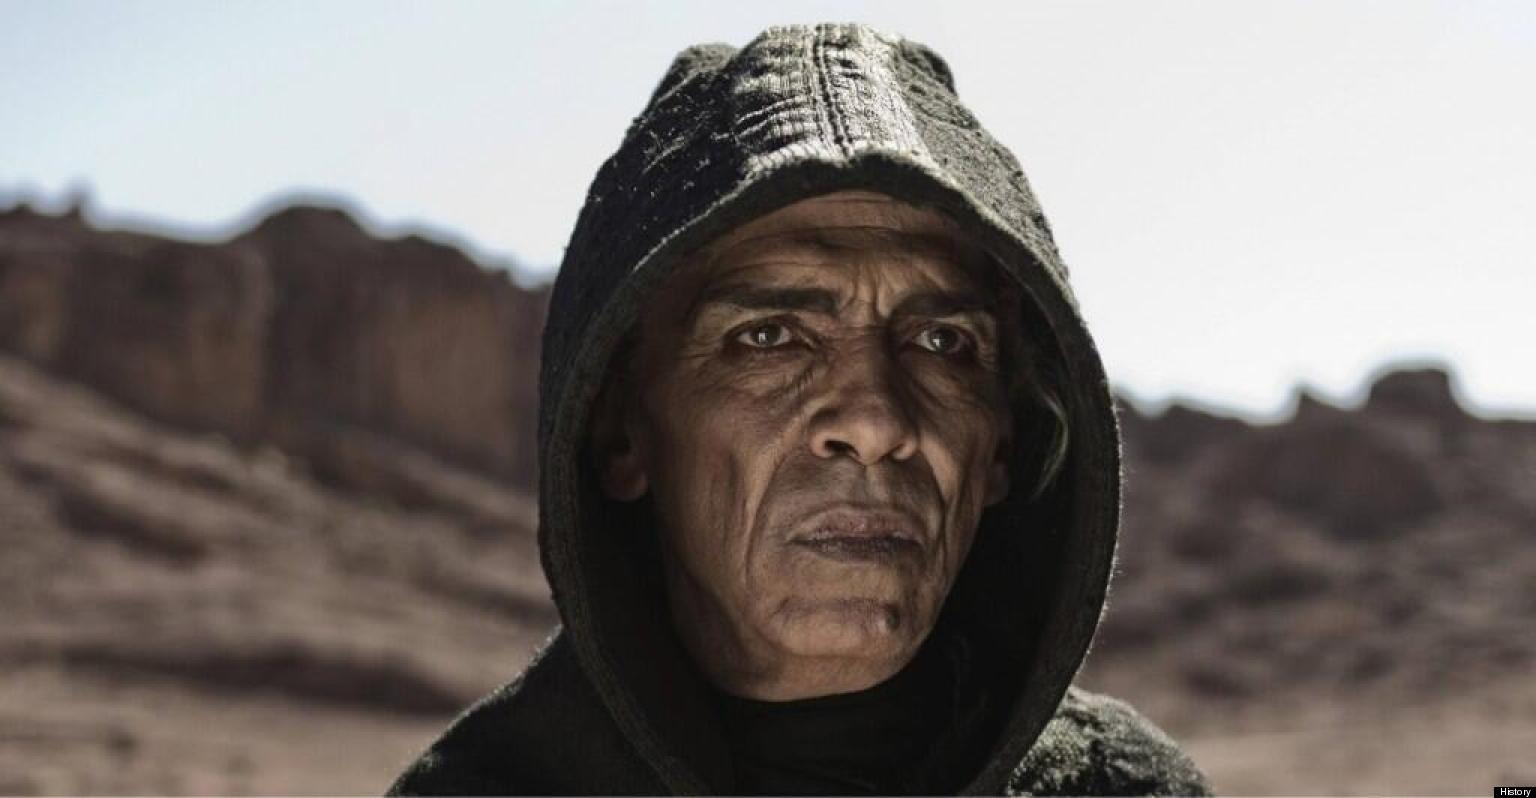 Satan Actor Reacts To Obama Comparison